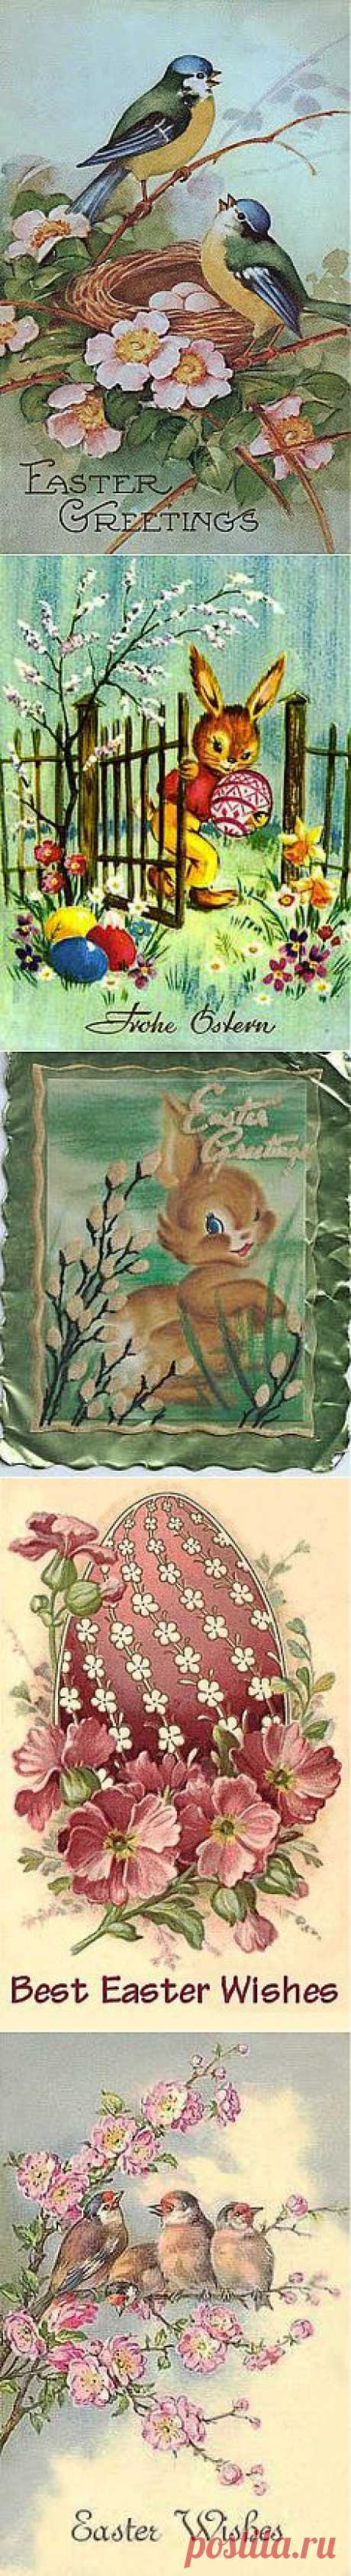 Here Comes Peter Cottontail on Pinterest